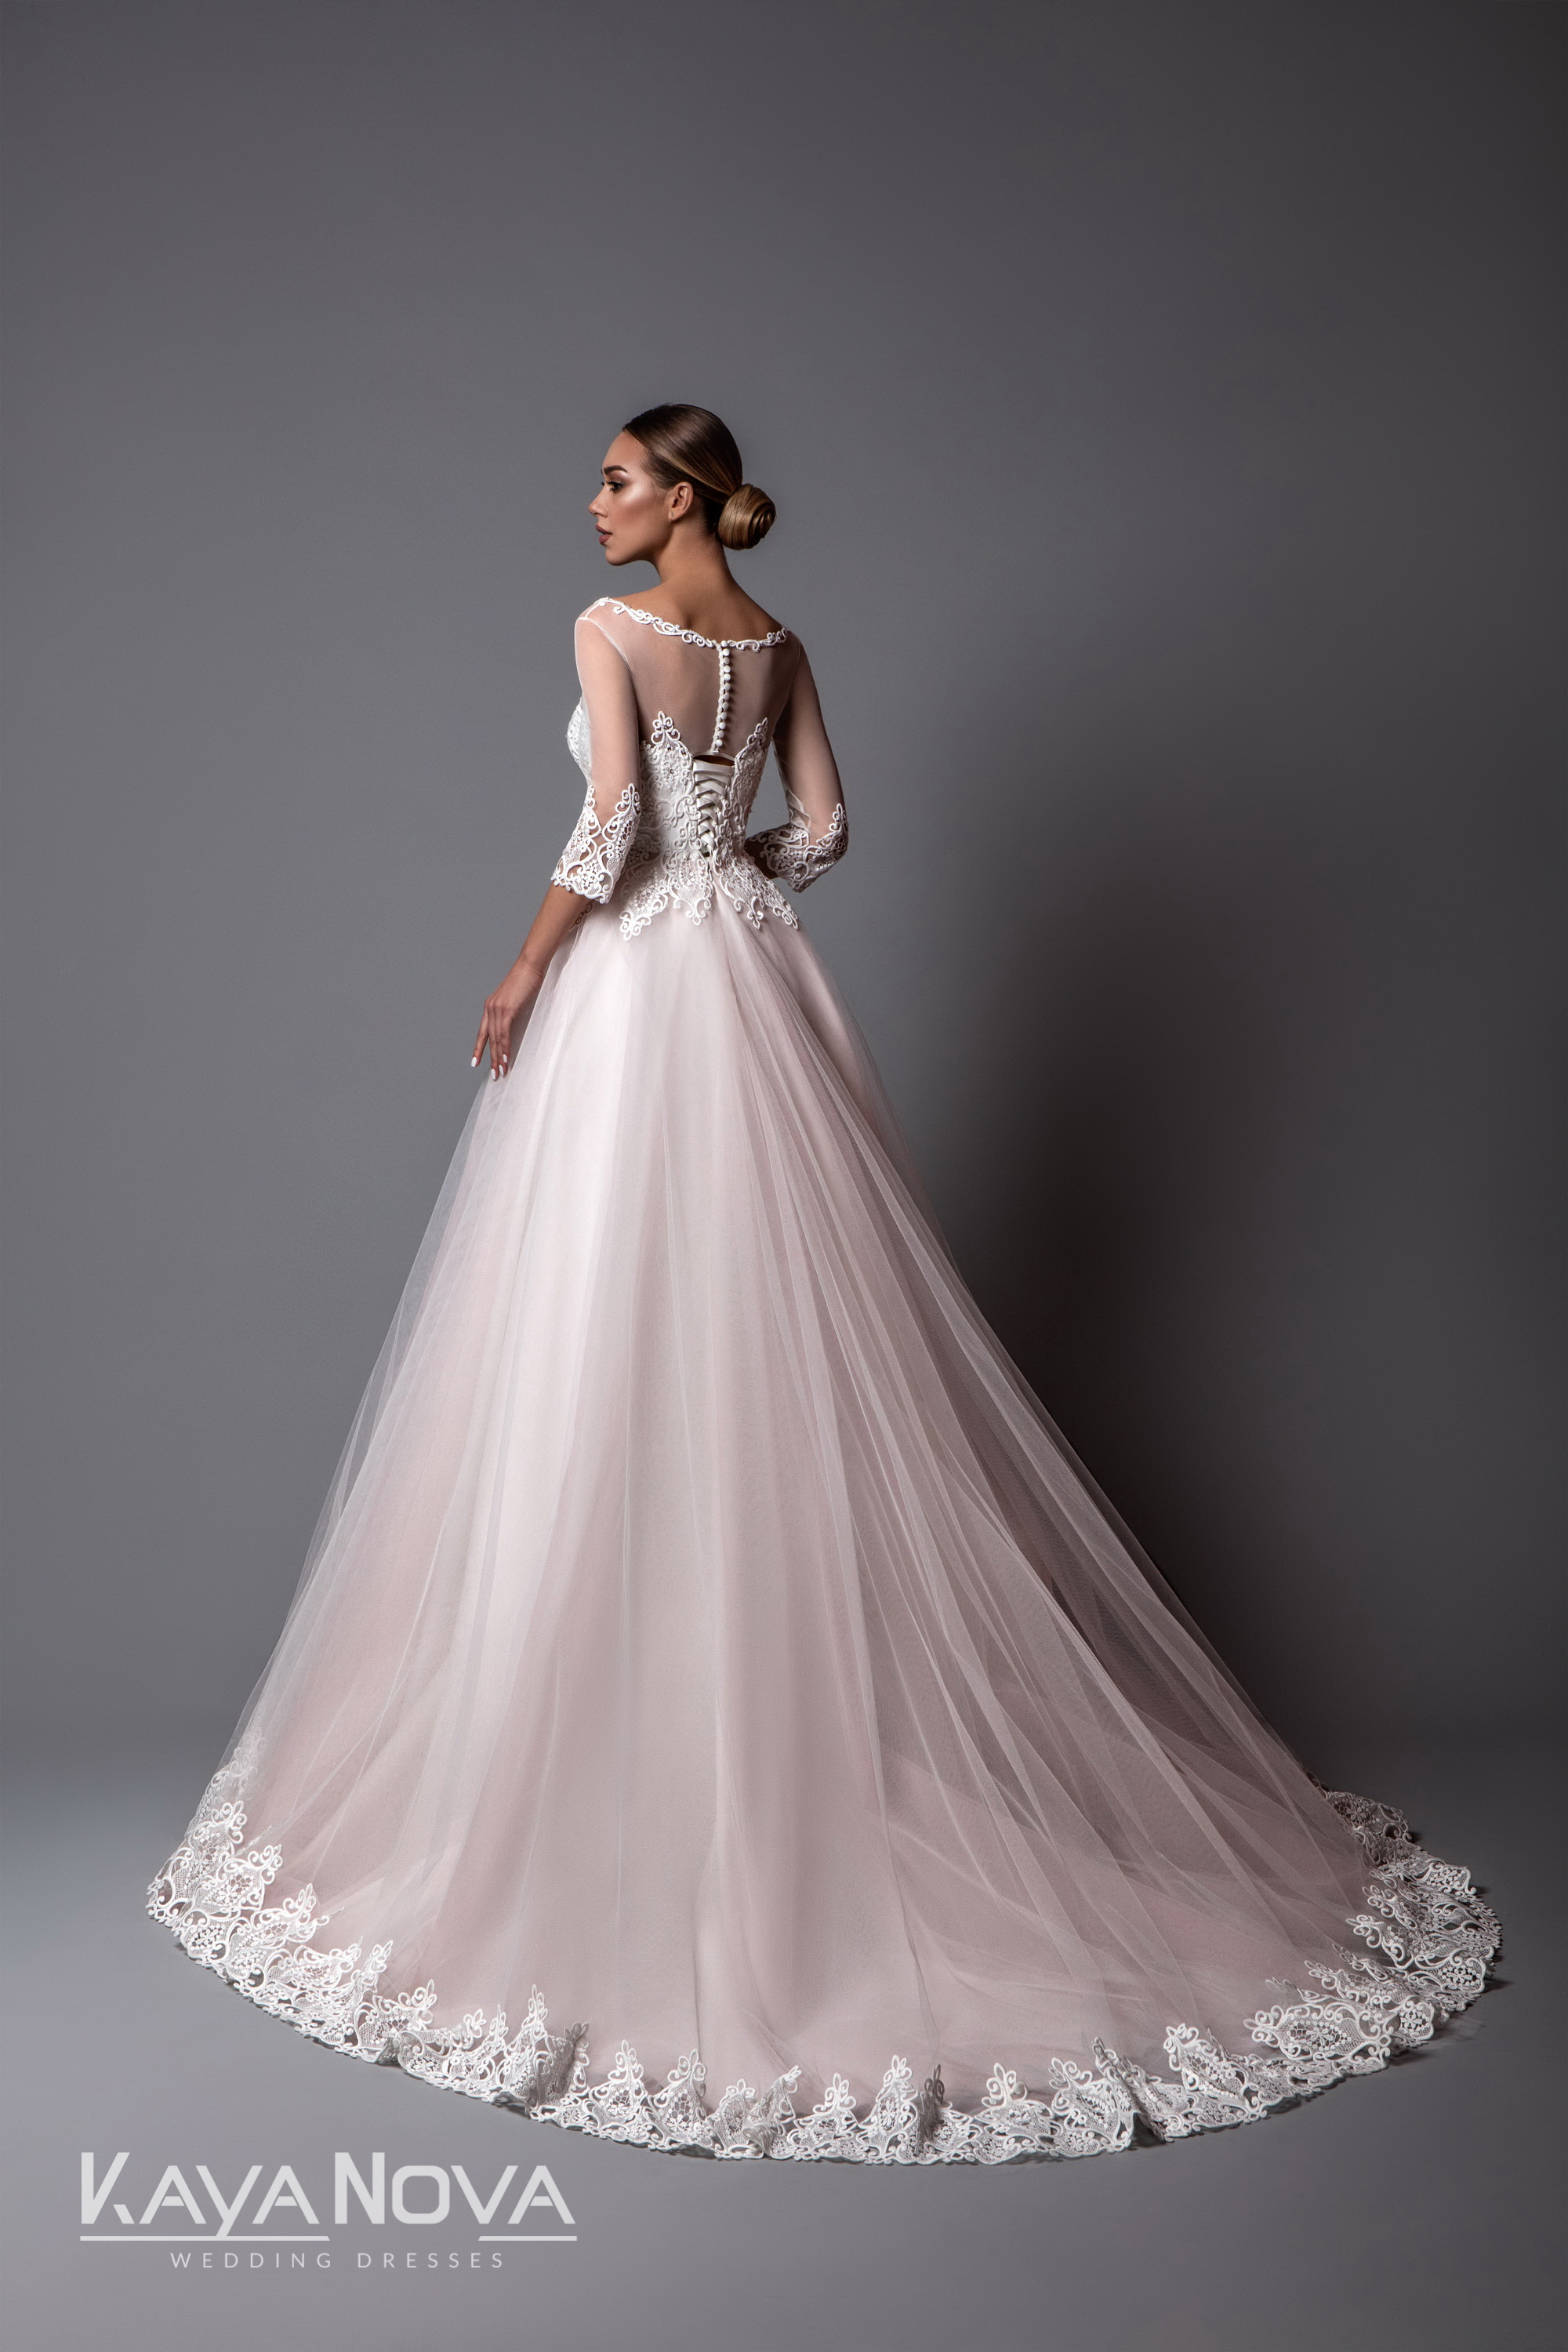 https://kayawedding.com/images/stories/virtuemart/product/Elena 2.jpg